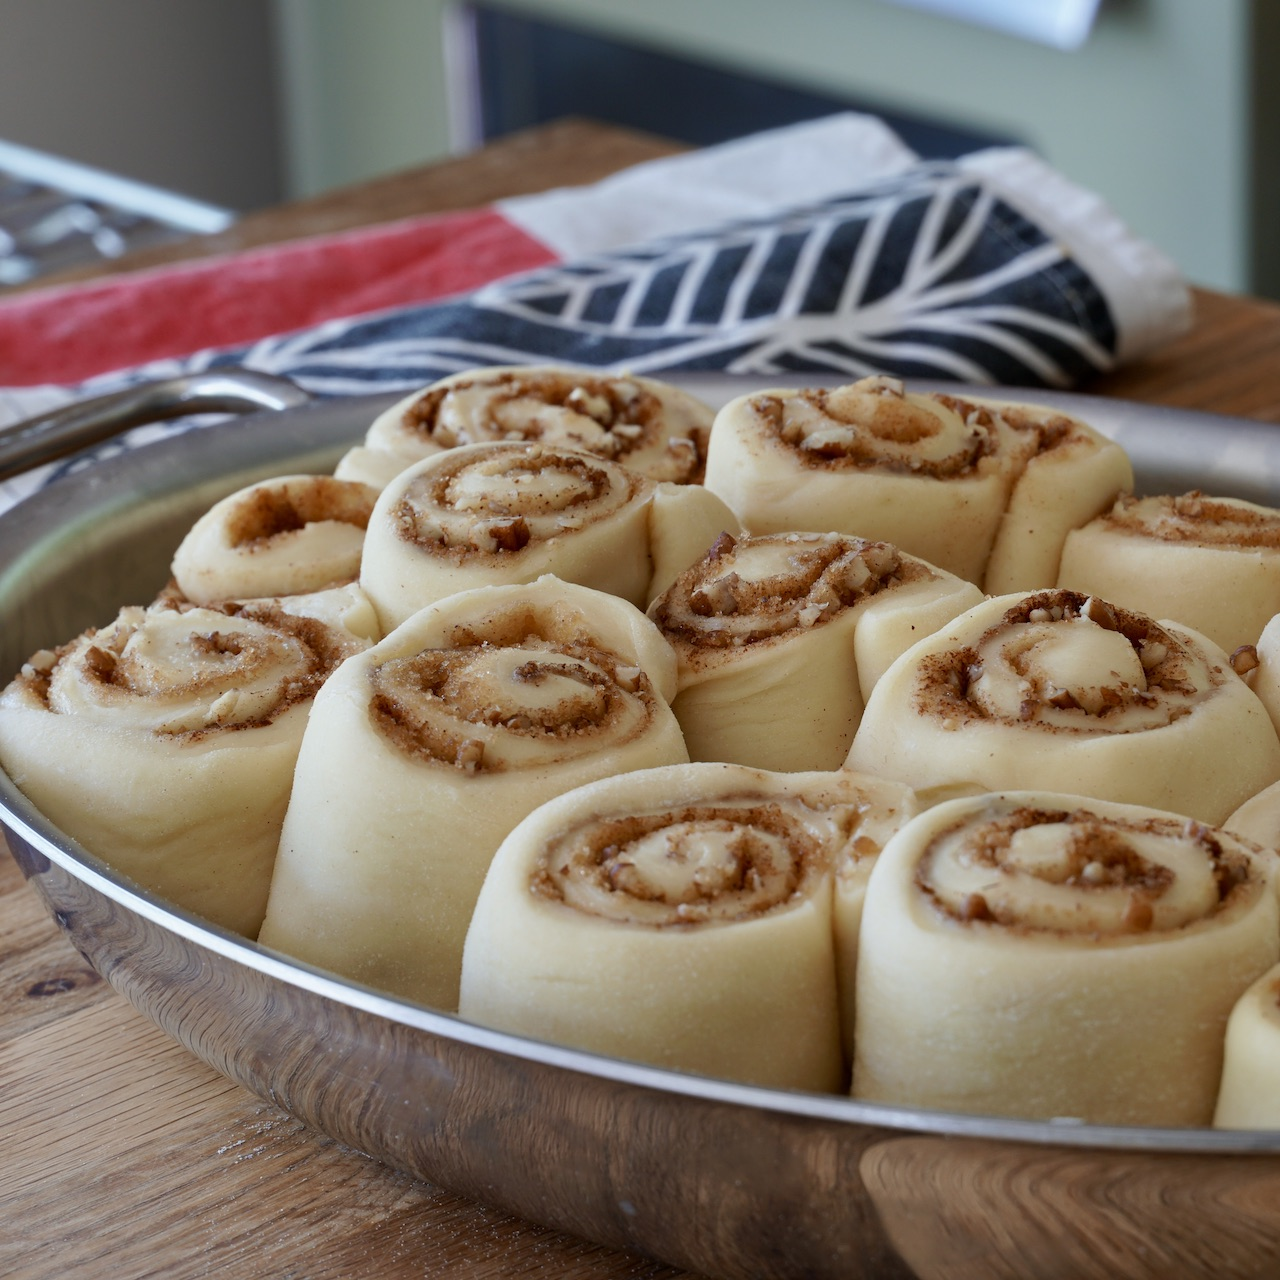 The cinnamon rolls after they've risen